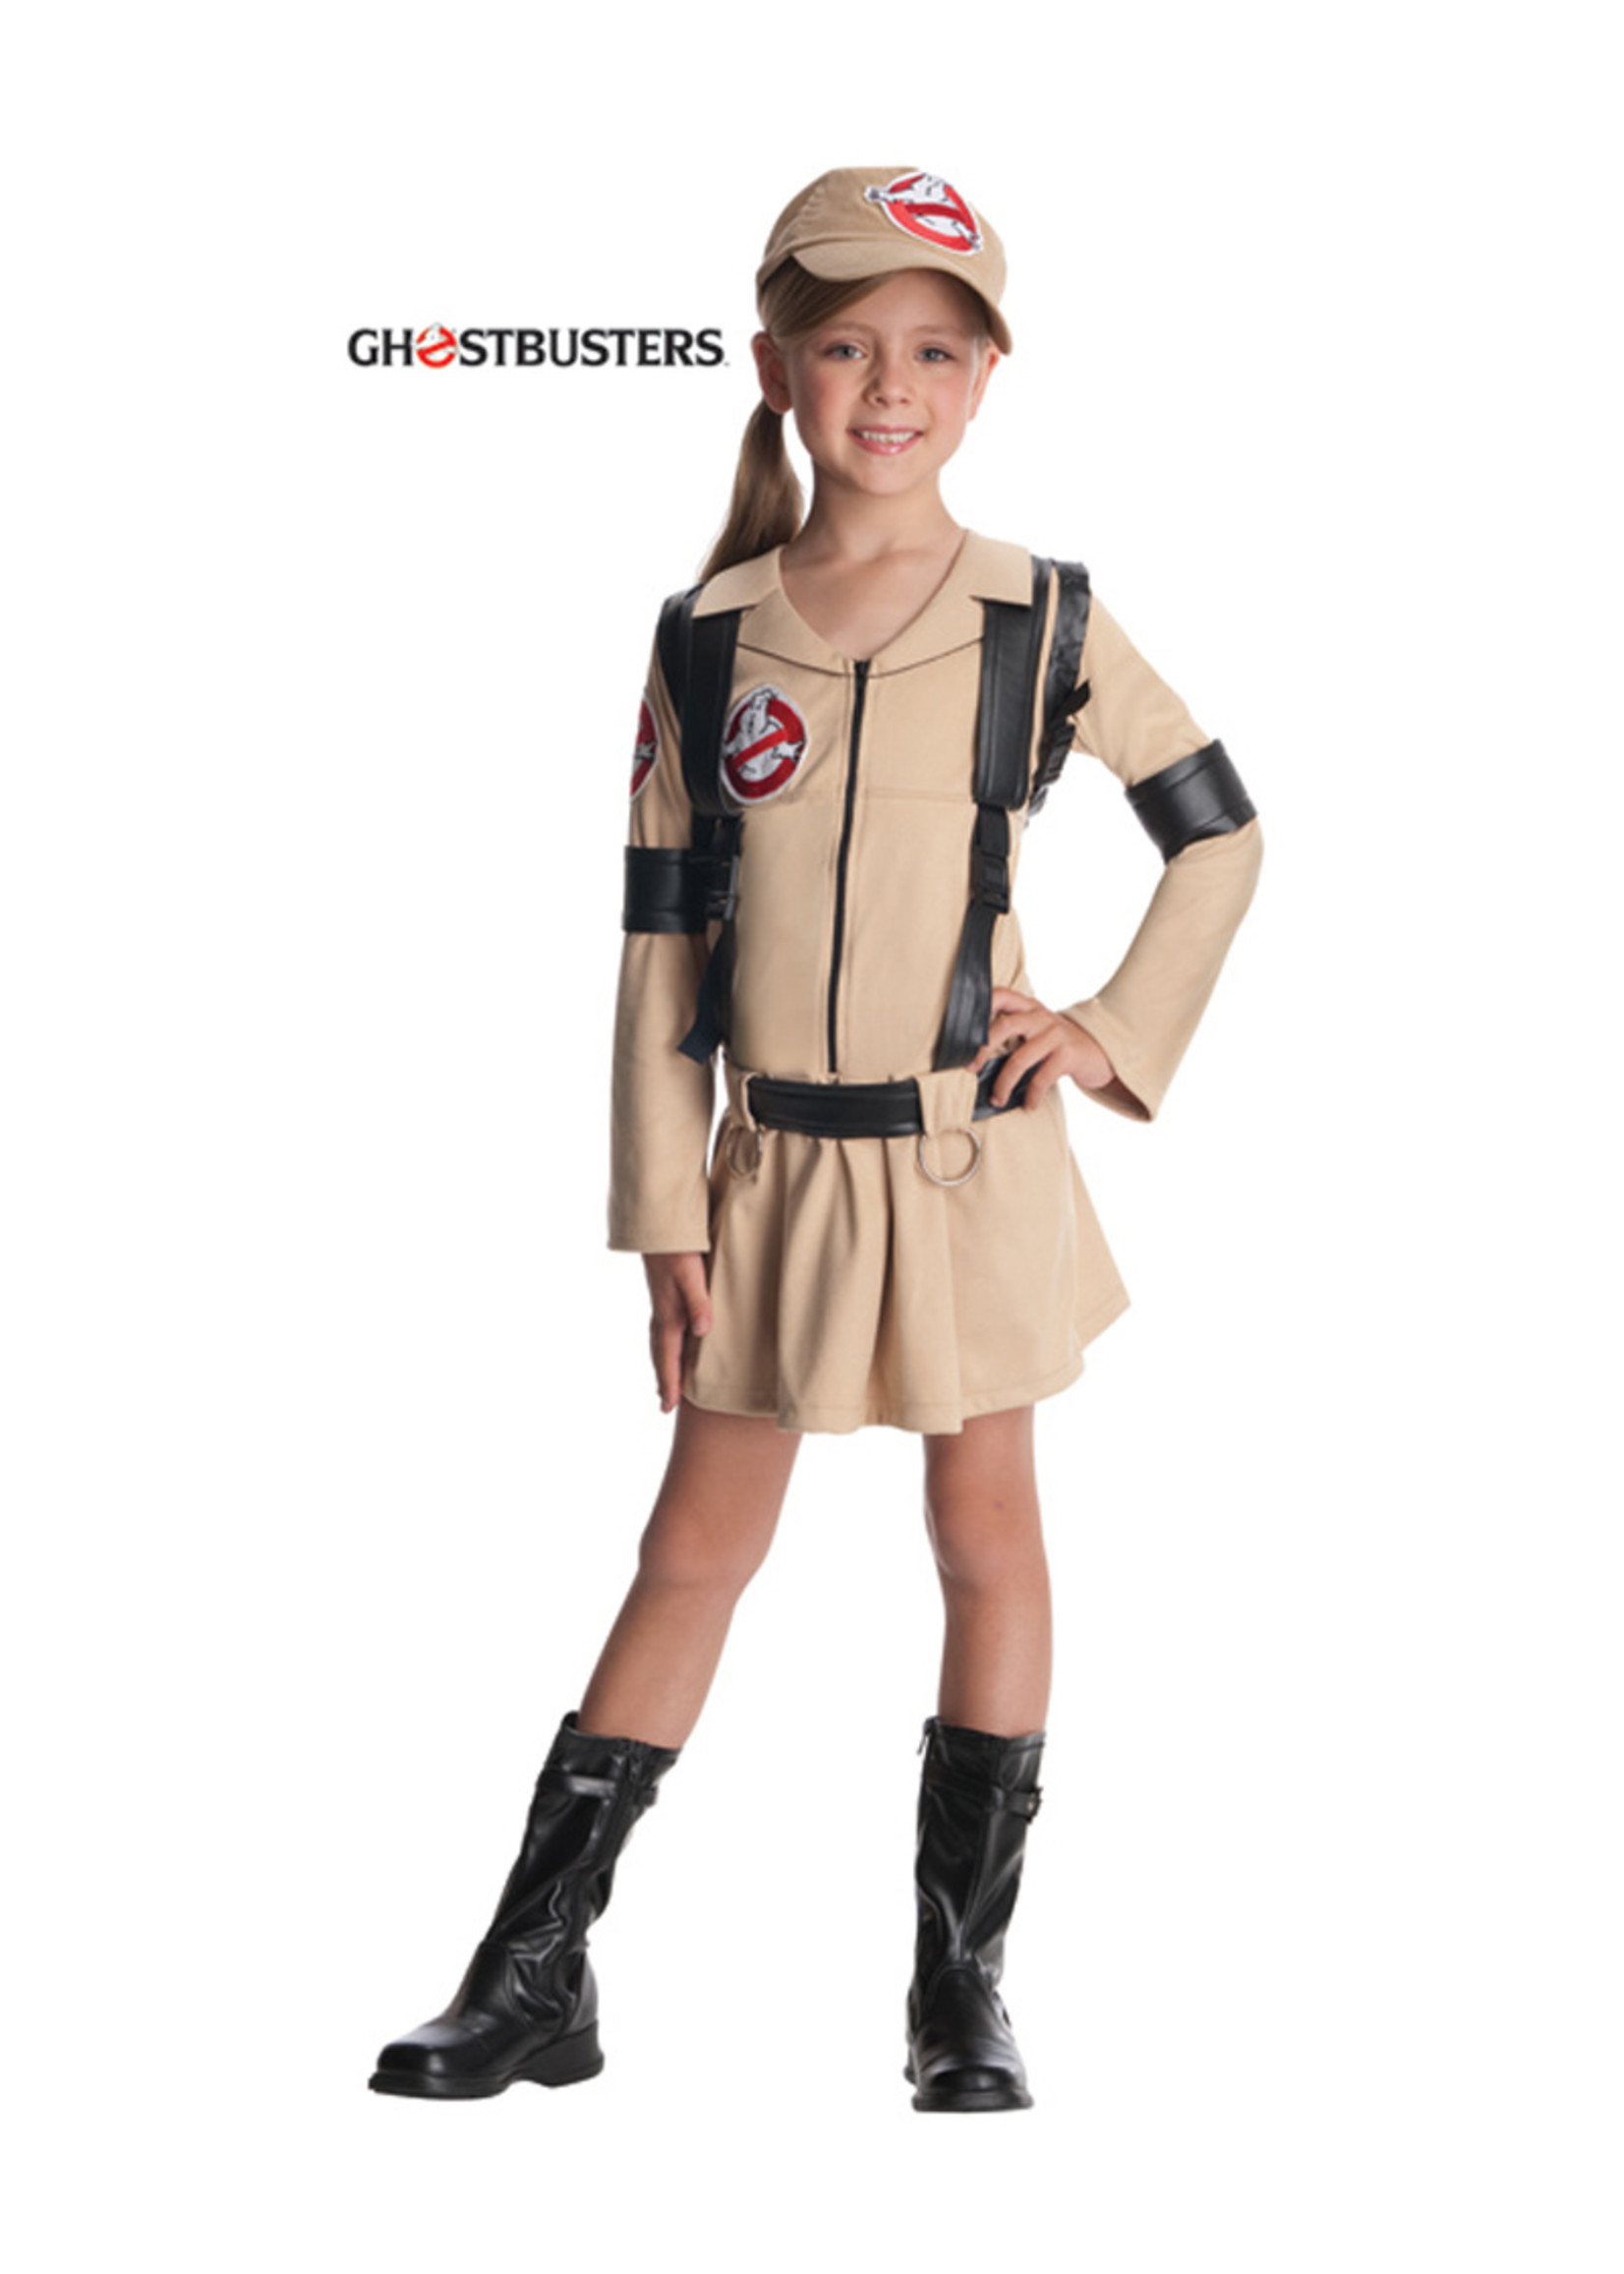 Ghostbusters Costume - Girls